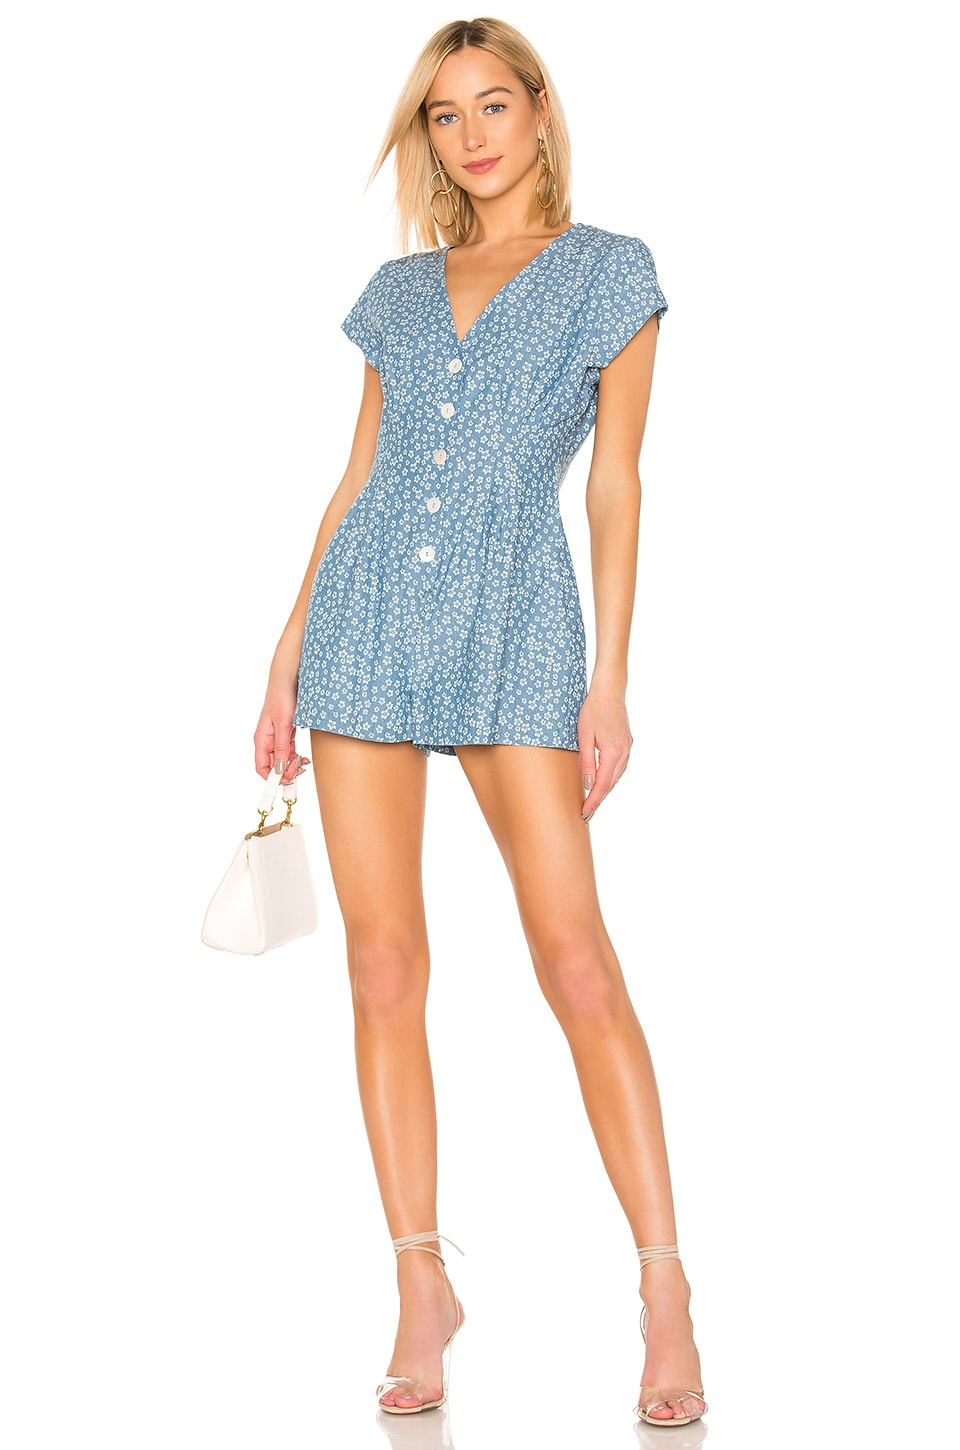 MINKPINK Lazy Daze Romper in Navy & White